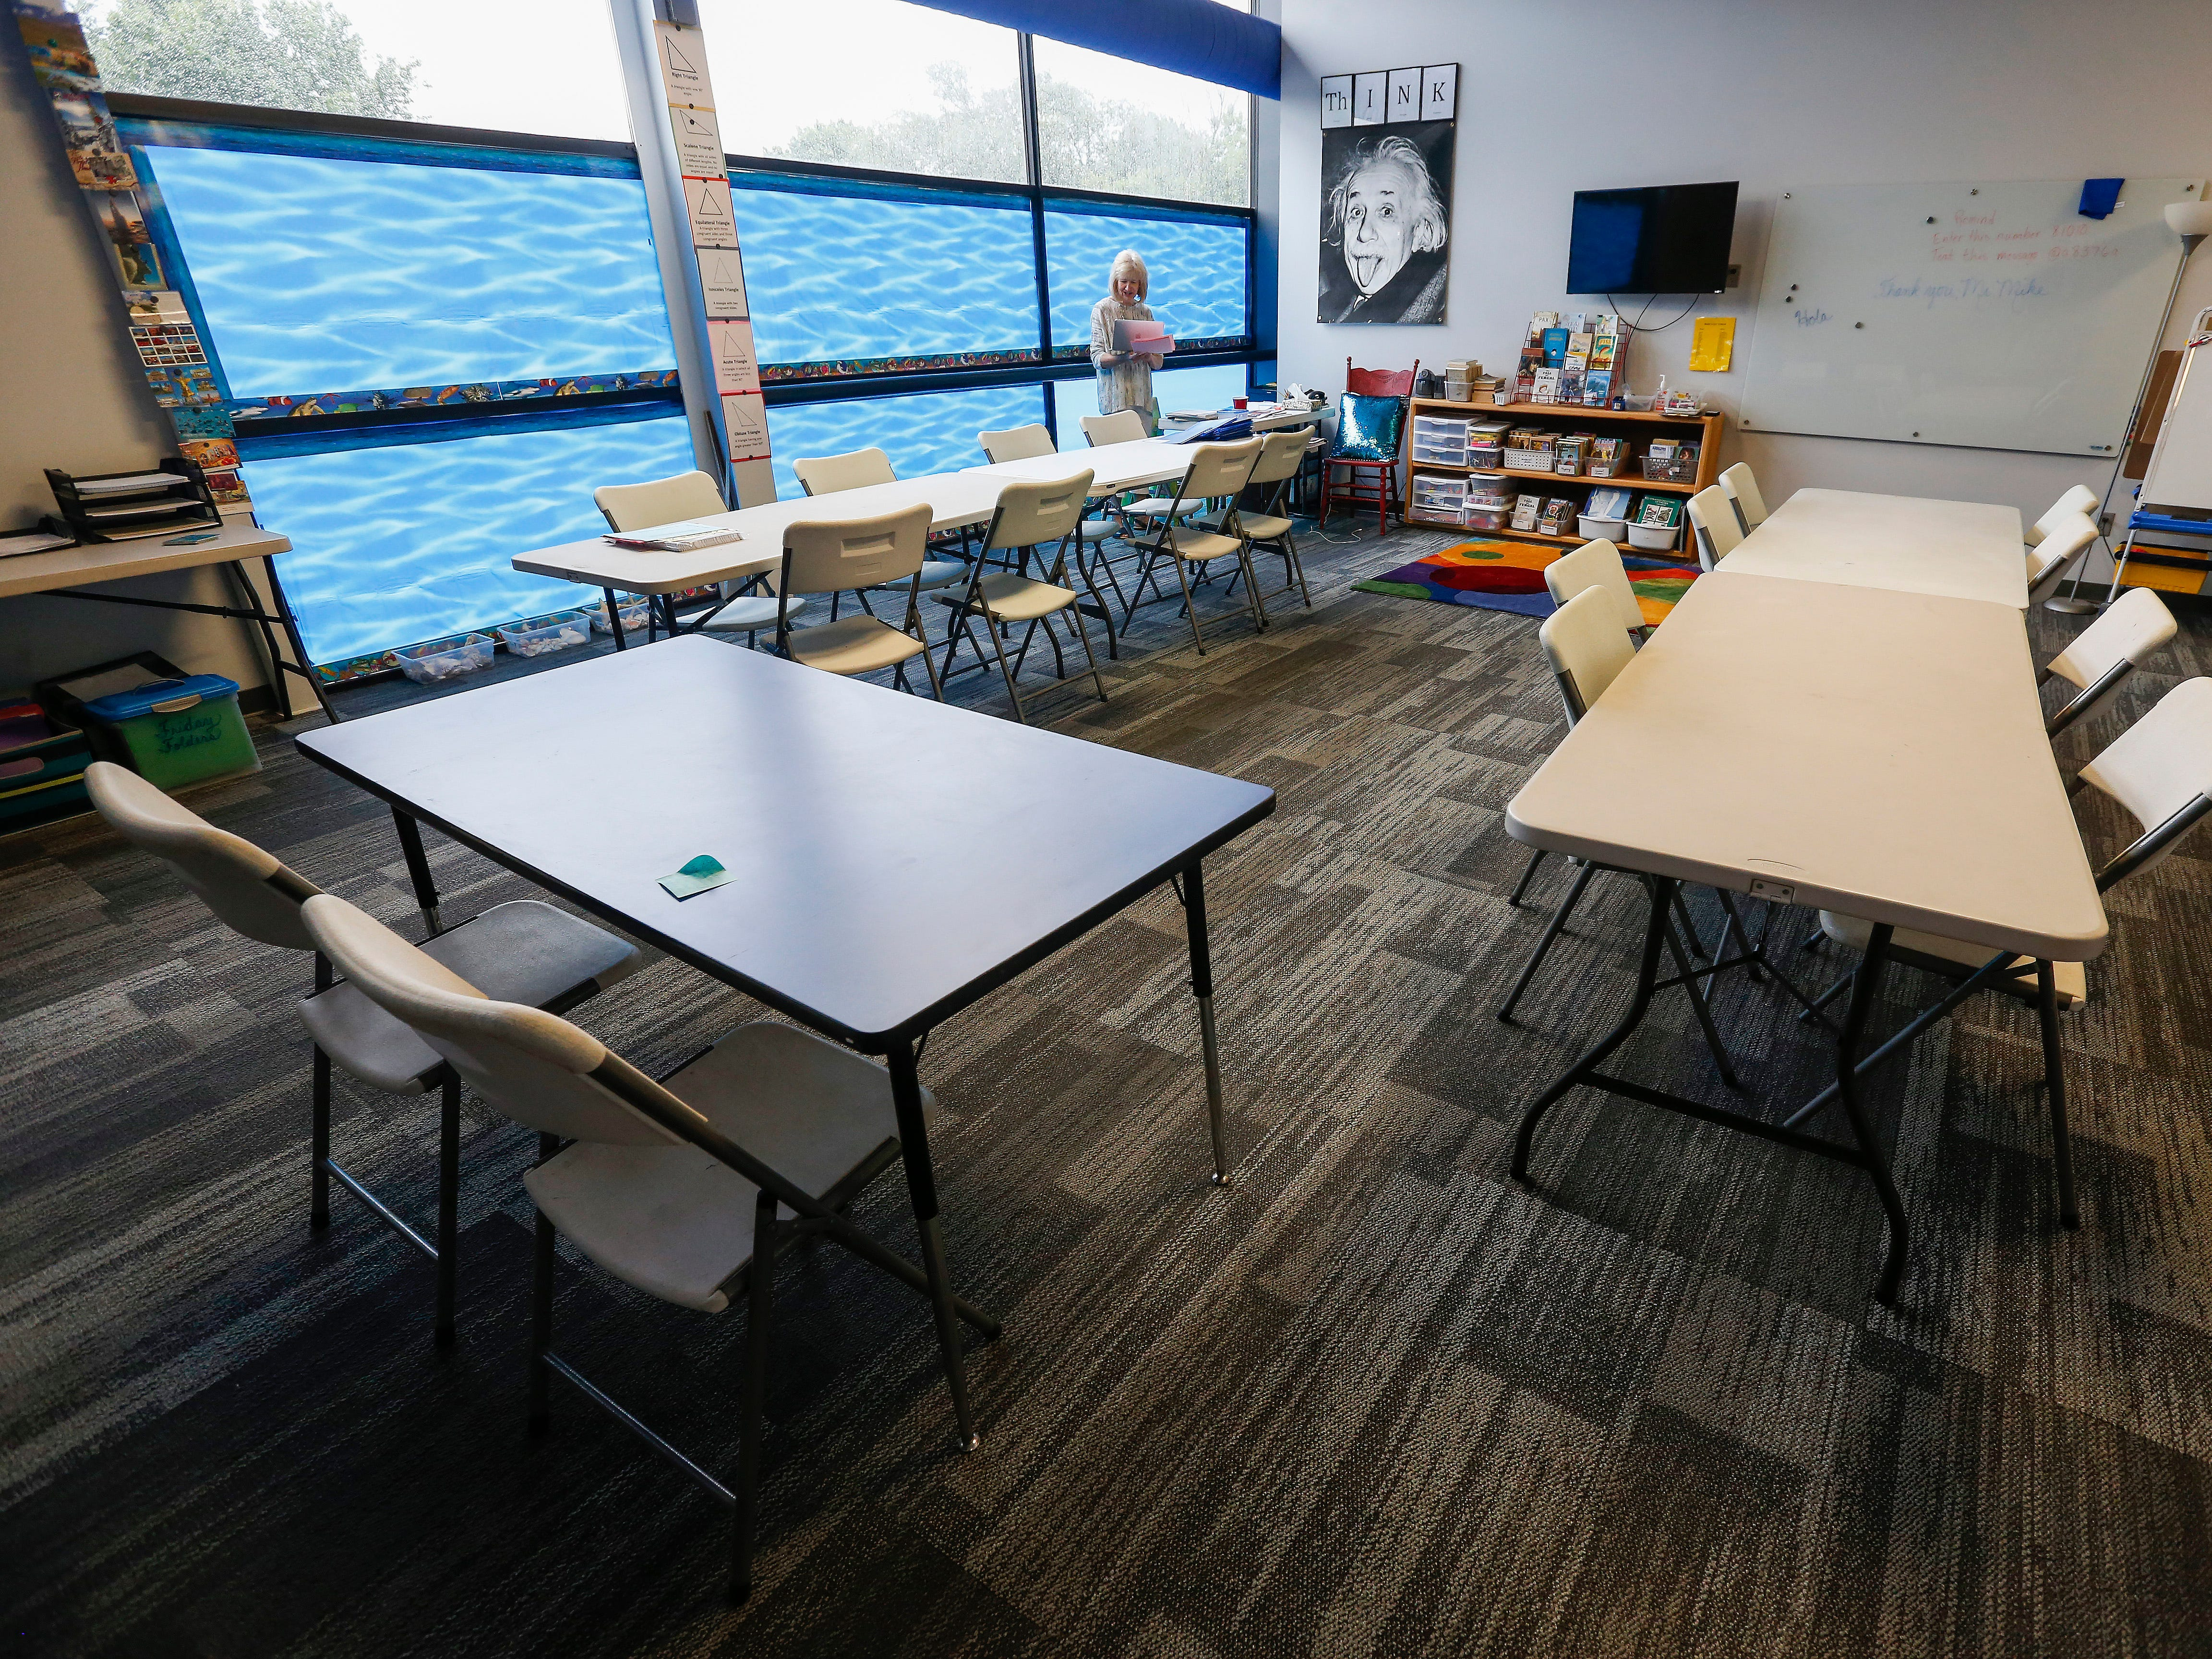 This 4th grade classroom has an aquatic theme at the Summit Preparatory School.